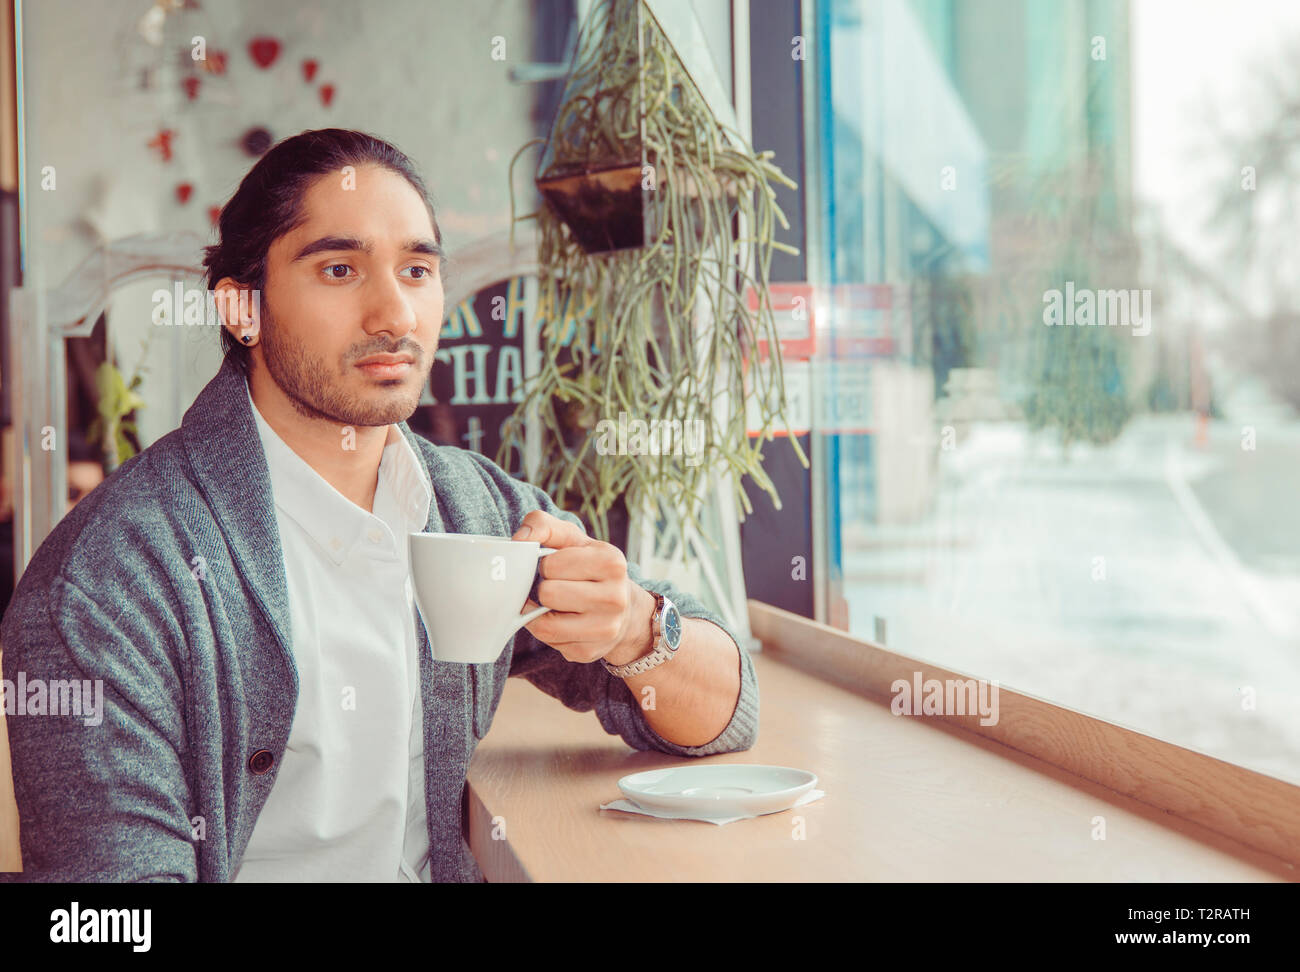 Sad thoughtful man looking down pensive holding cup. Closeup portrait of a handsome guy wearing casual clothing sitting near window at table in coffee - Stock Image